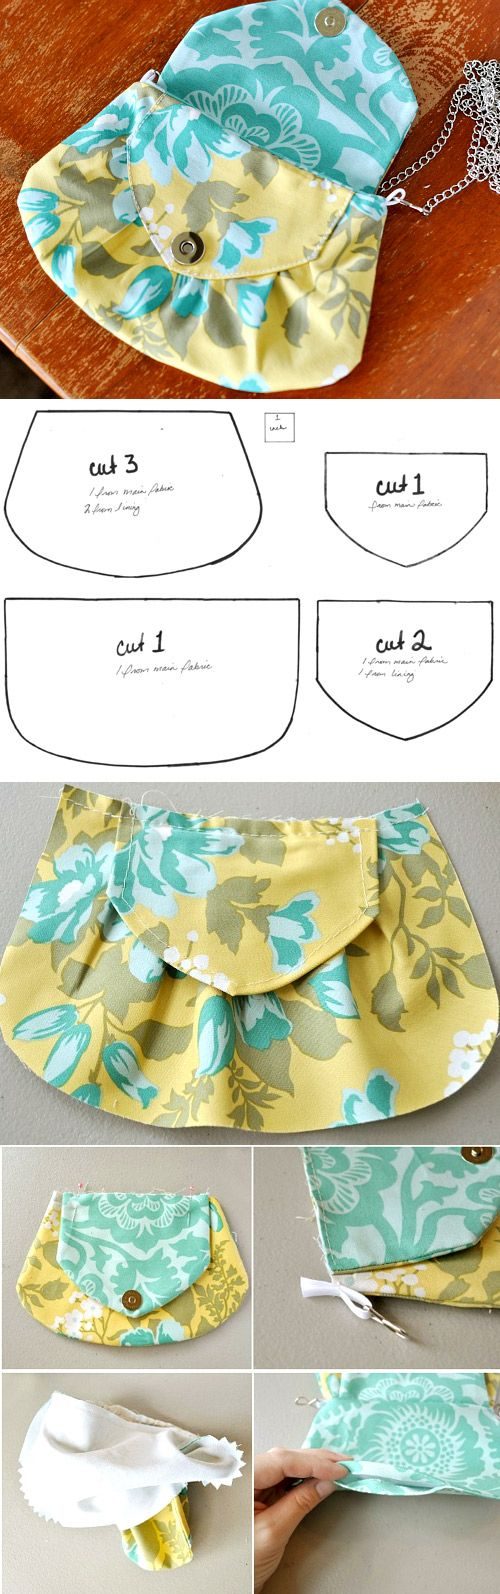 Clutch Handbag DIY tutorial with patterns. http://www.handmadiya.com/2015/10/clutch-handbag-tutorial.html